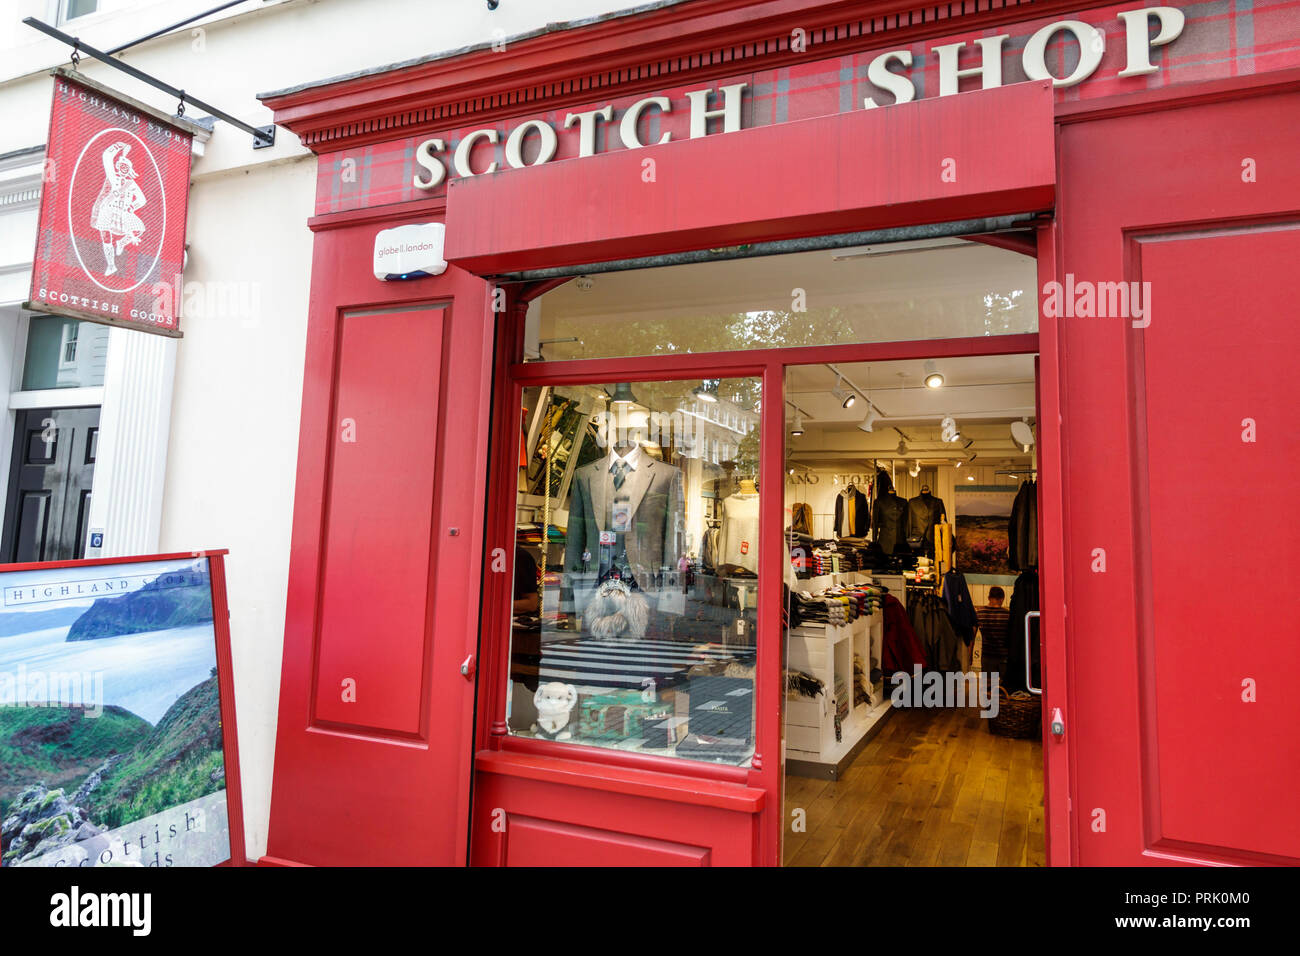 London England United Kingdom Great Britain Bloomsbury Highland Store Scottish Shop shopping store exterior window display front entrance business - Stock Image